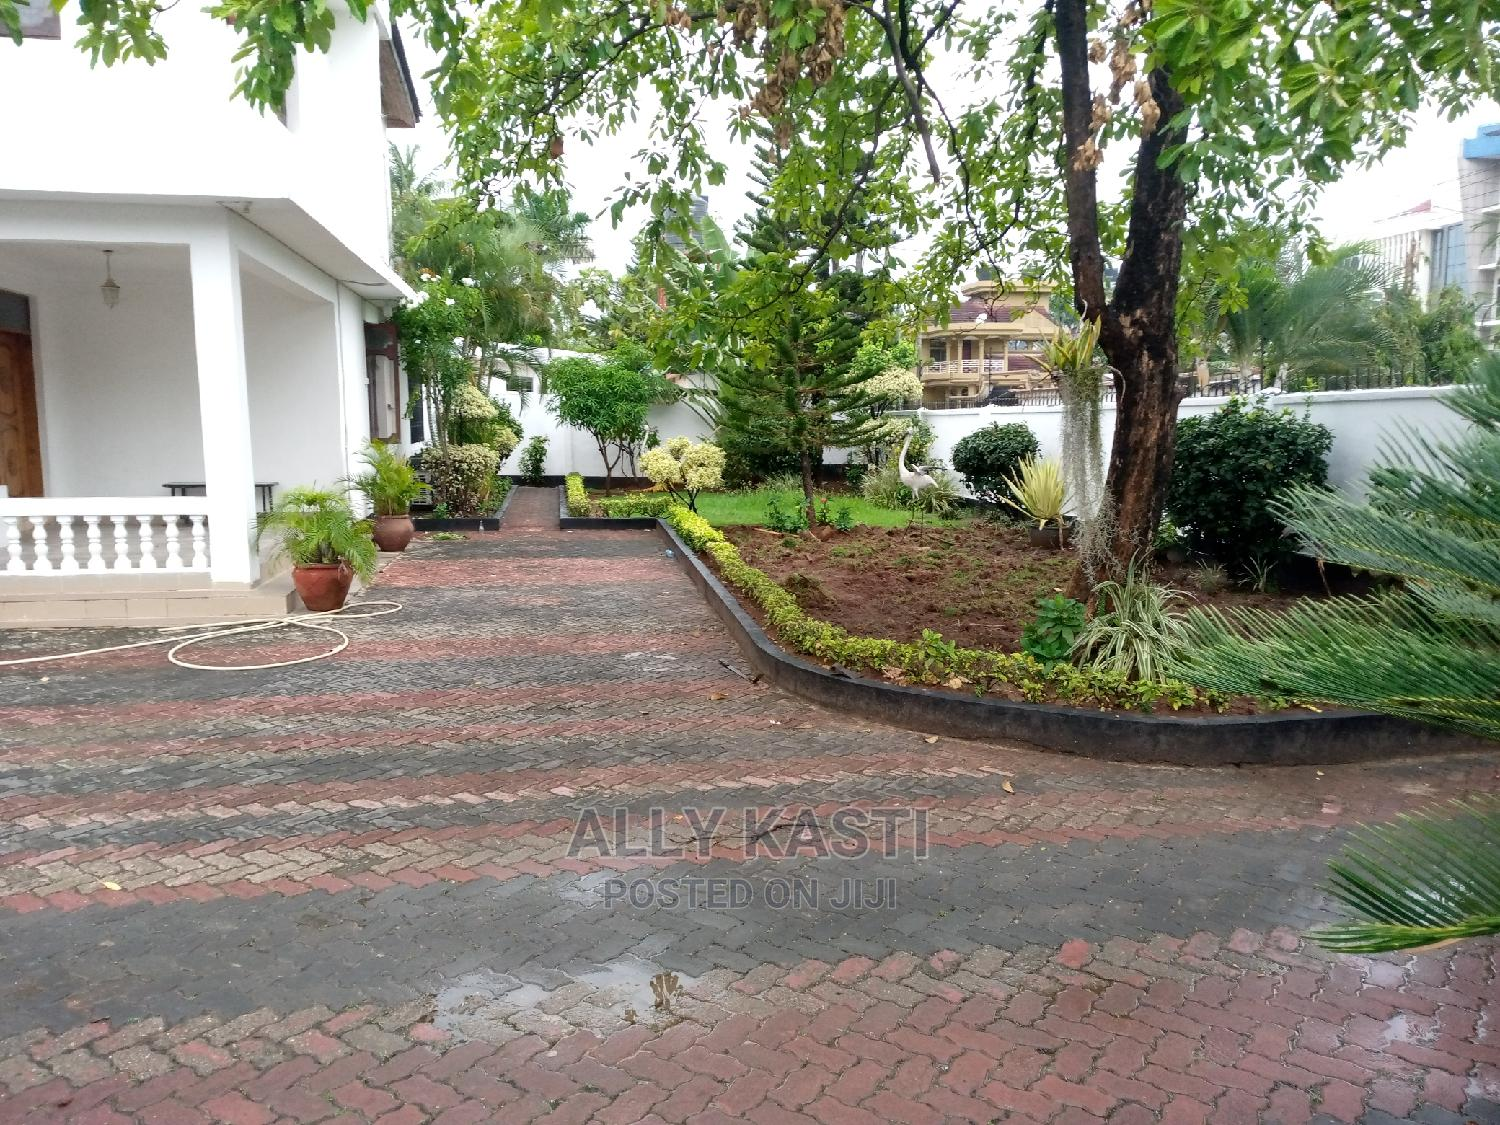 6bedrooms House for Rent at Mikocheni Warioba. | Houses & Apartments For Rent for sale in Kinondoni, Dar es Salaam, Tanzania